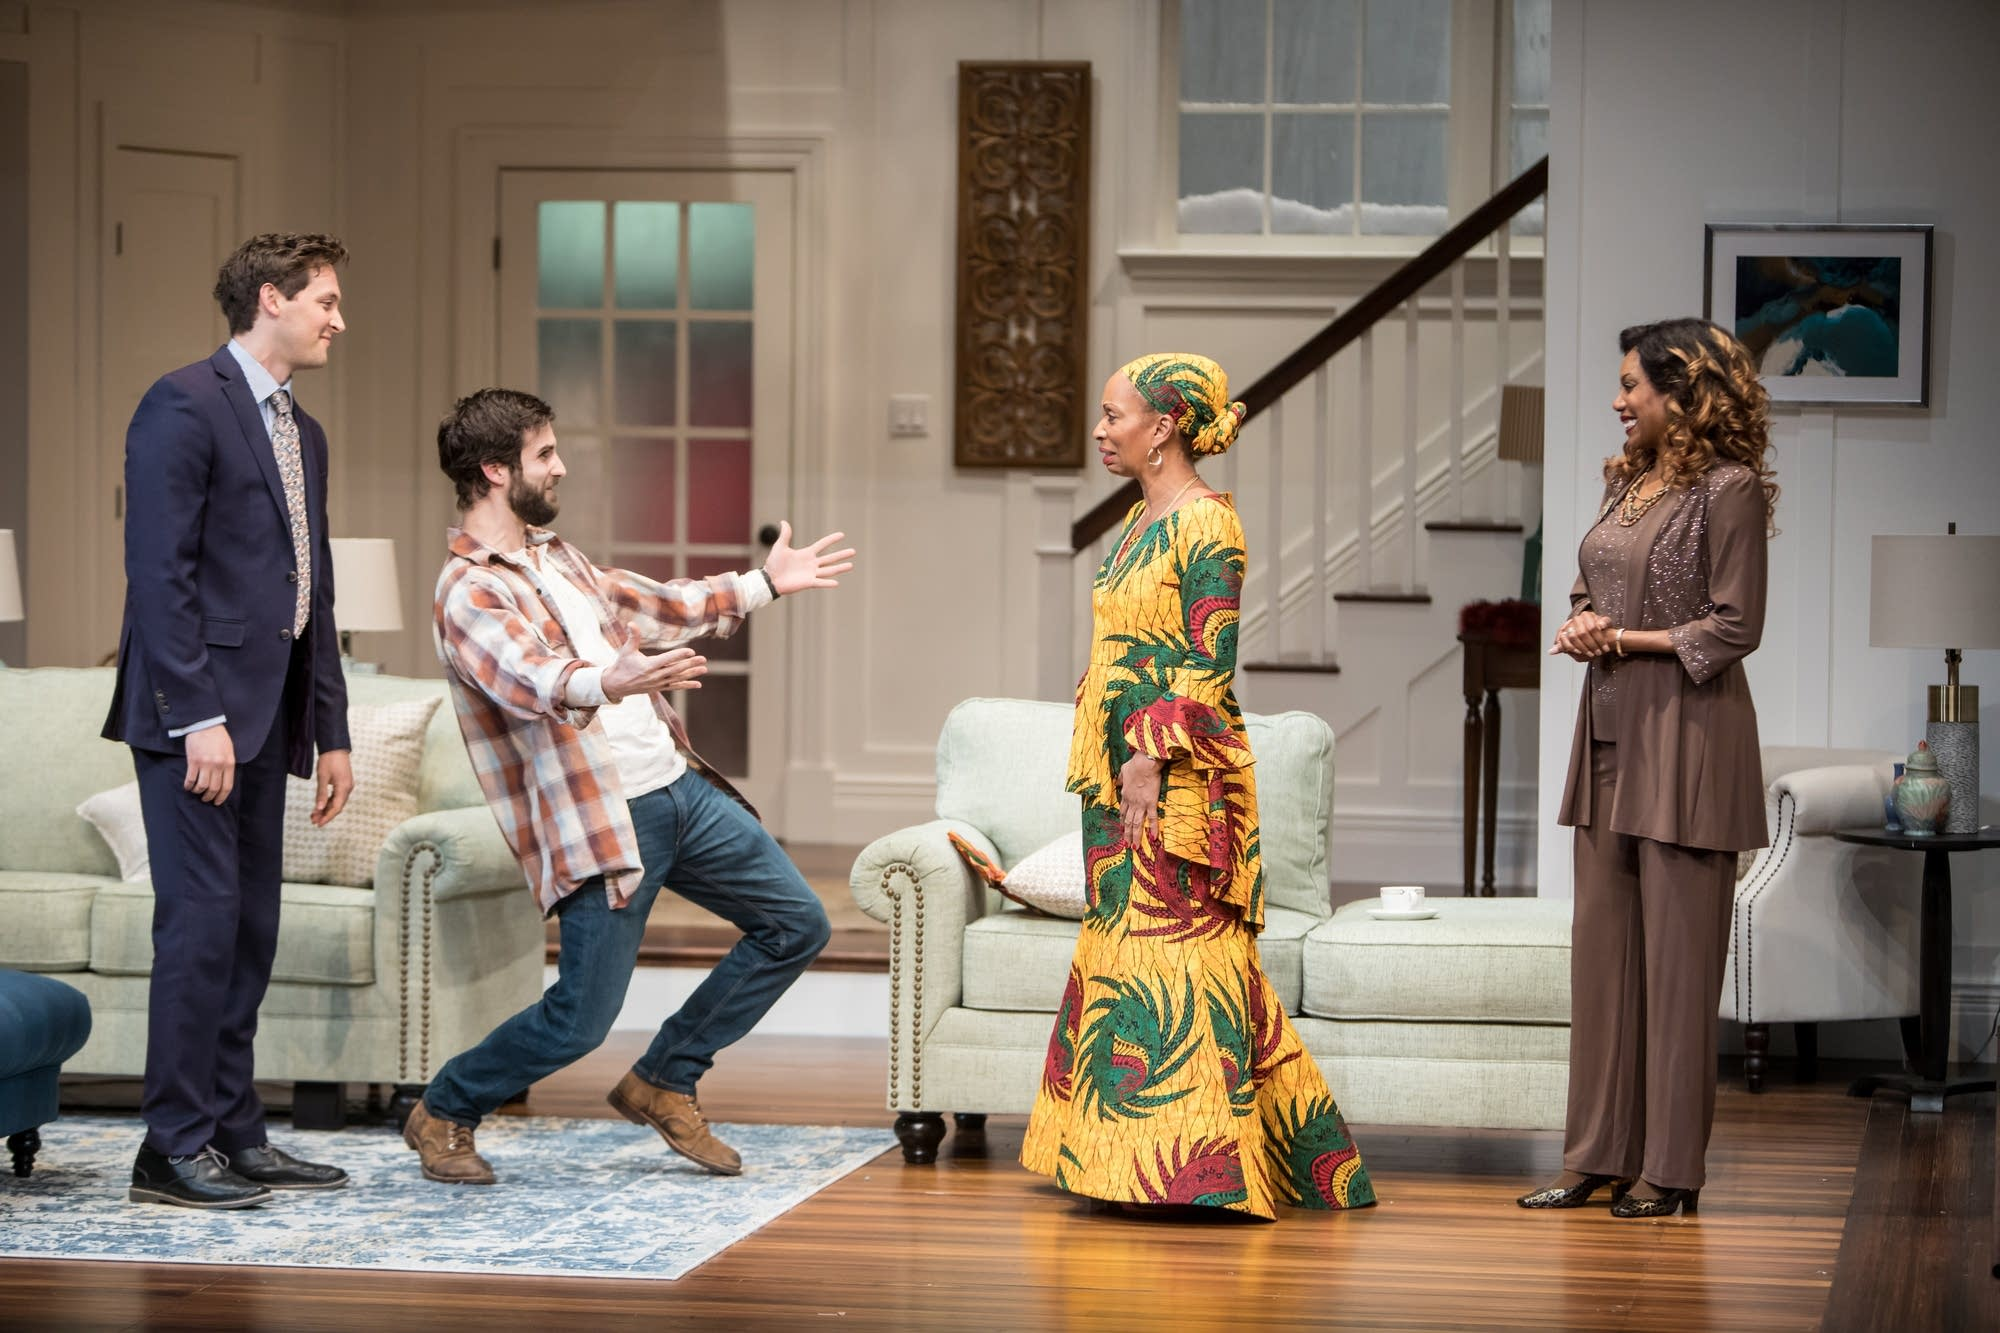 'Familiar' deals with cultural identity, tradition and assimilation.